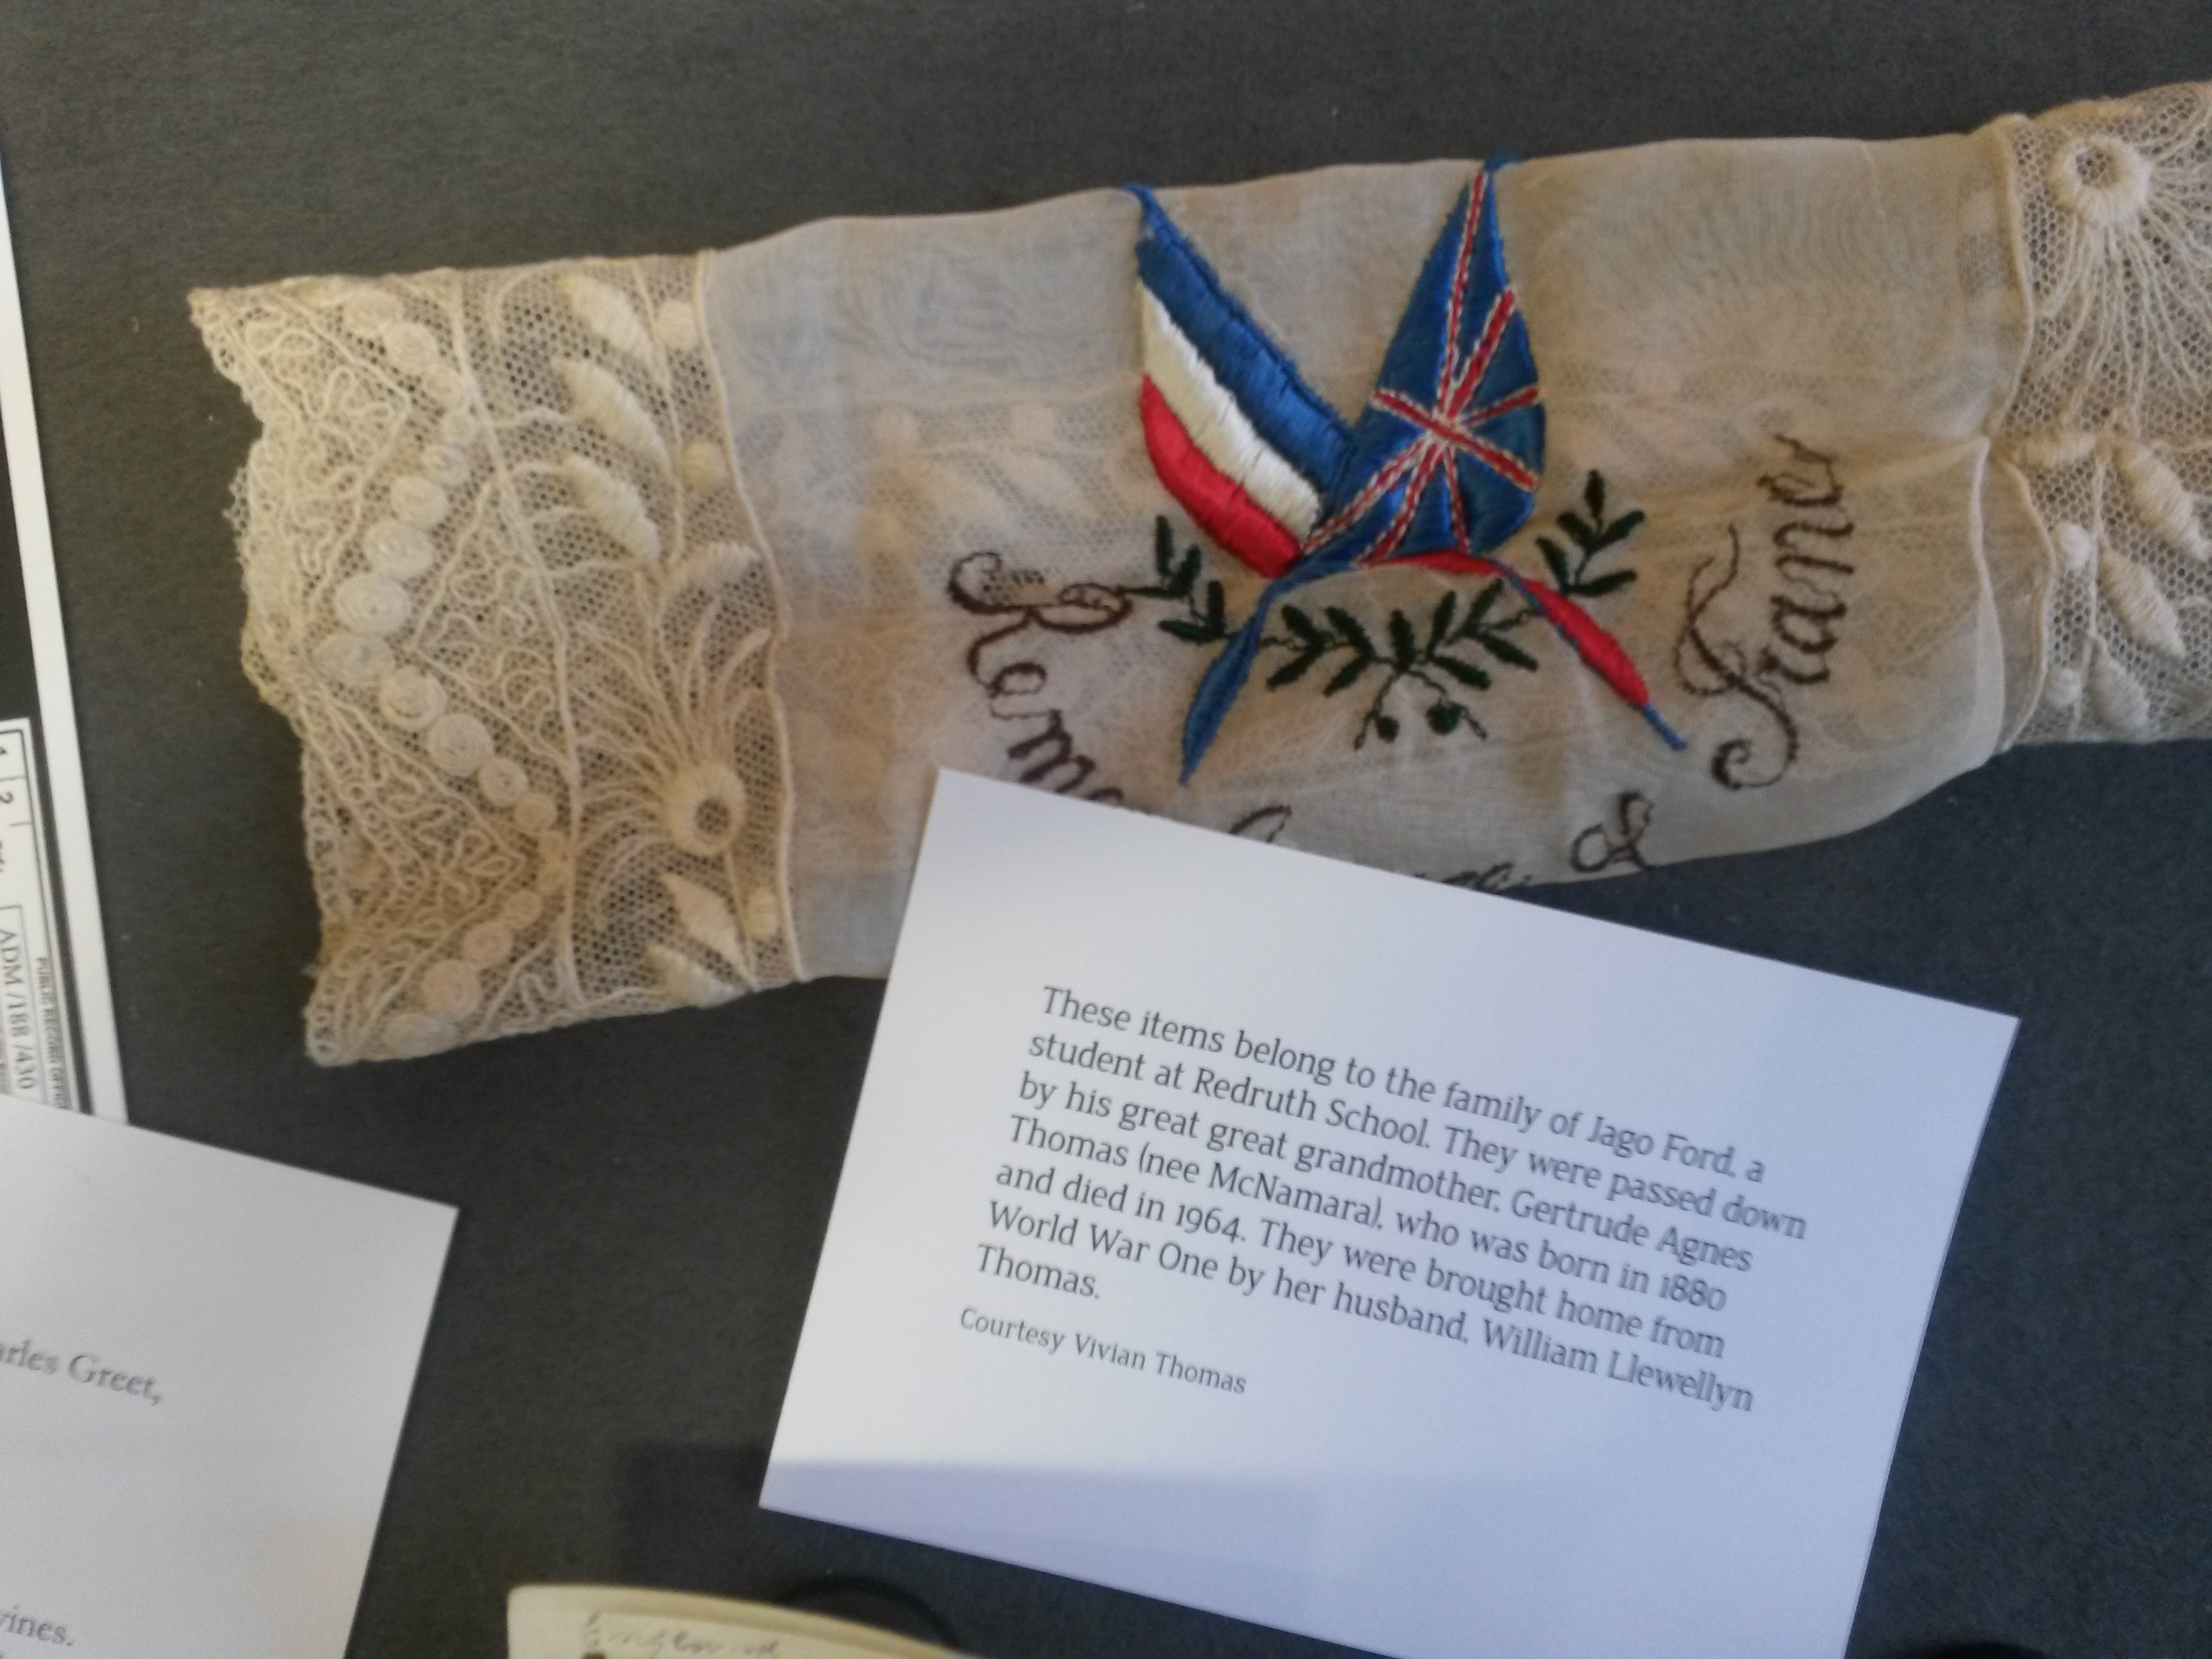 Embroidered handkerchief belonging to family of Jago Ford